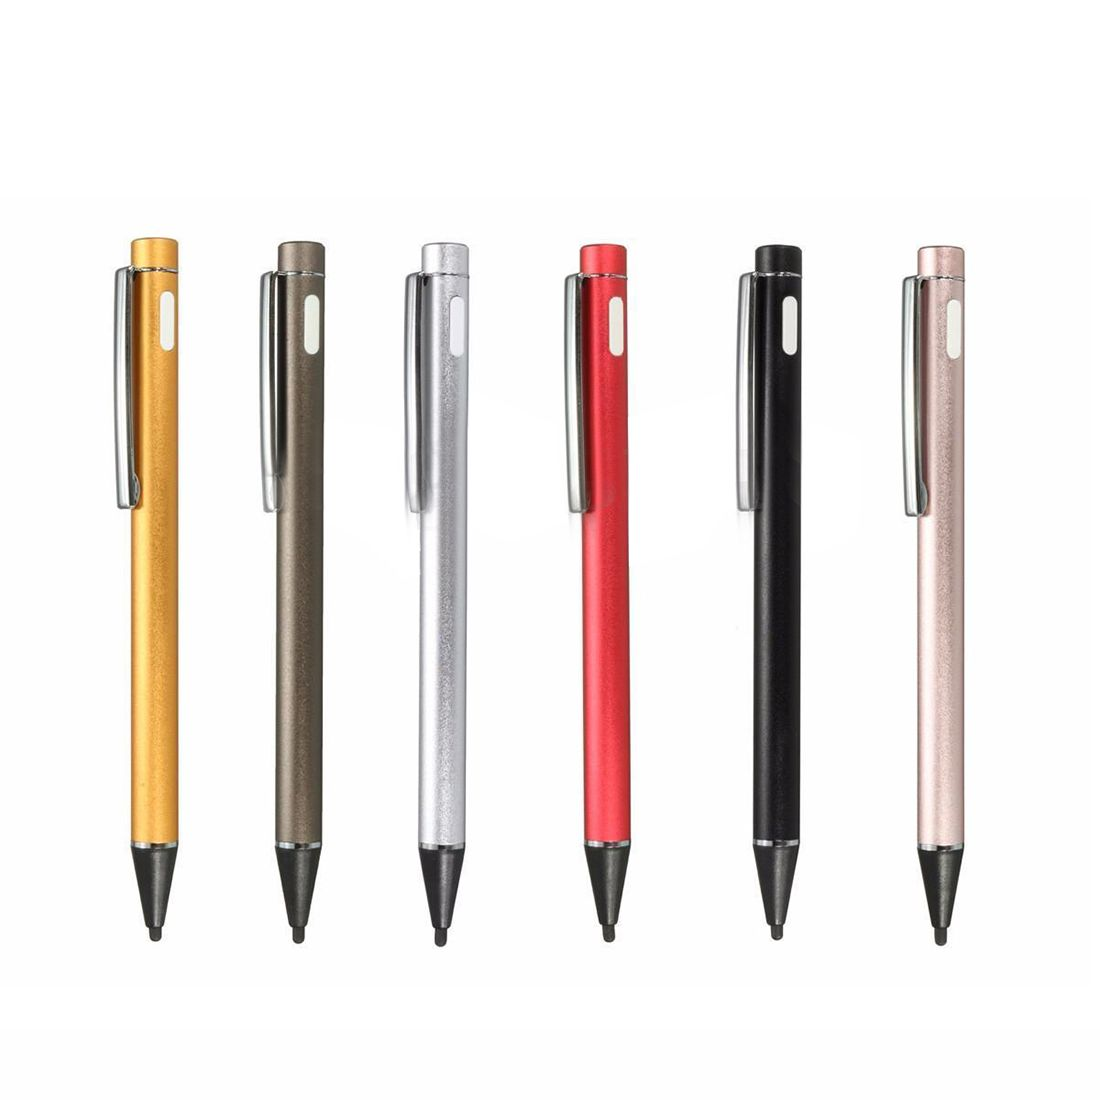 2.0mm Capacitive Active Touch Pen Stylish Painting Pens Rechargeable